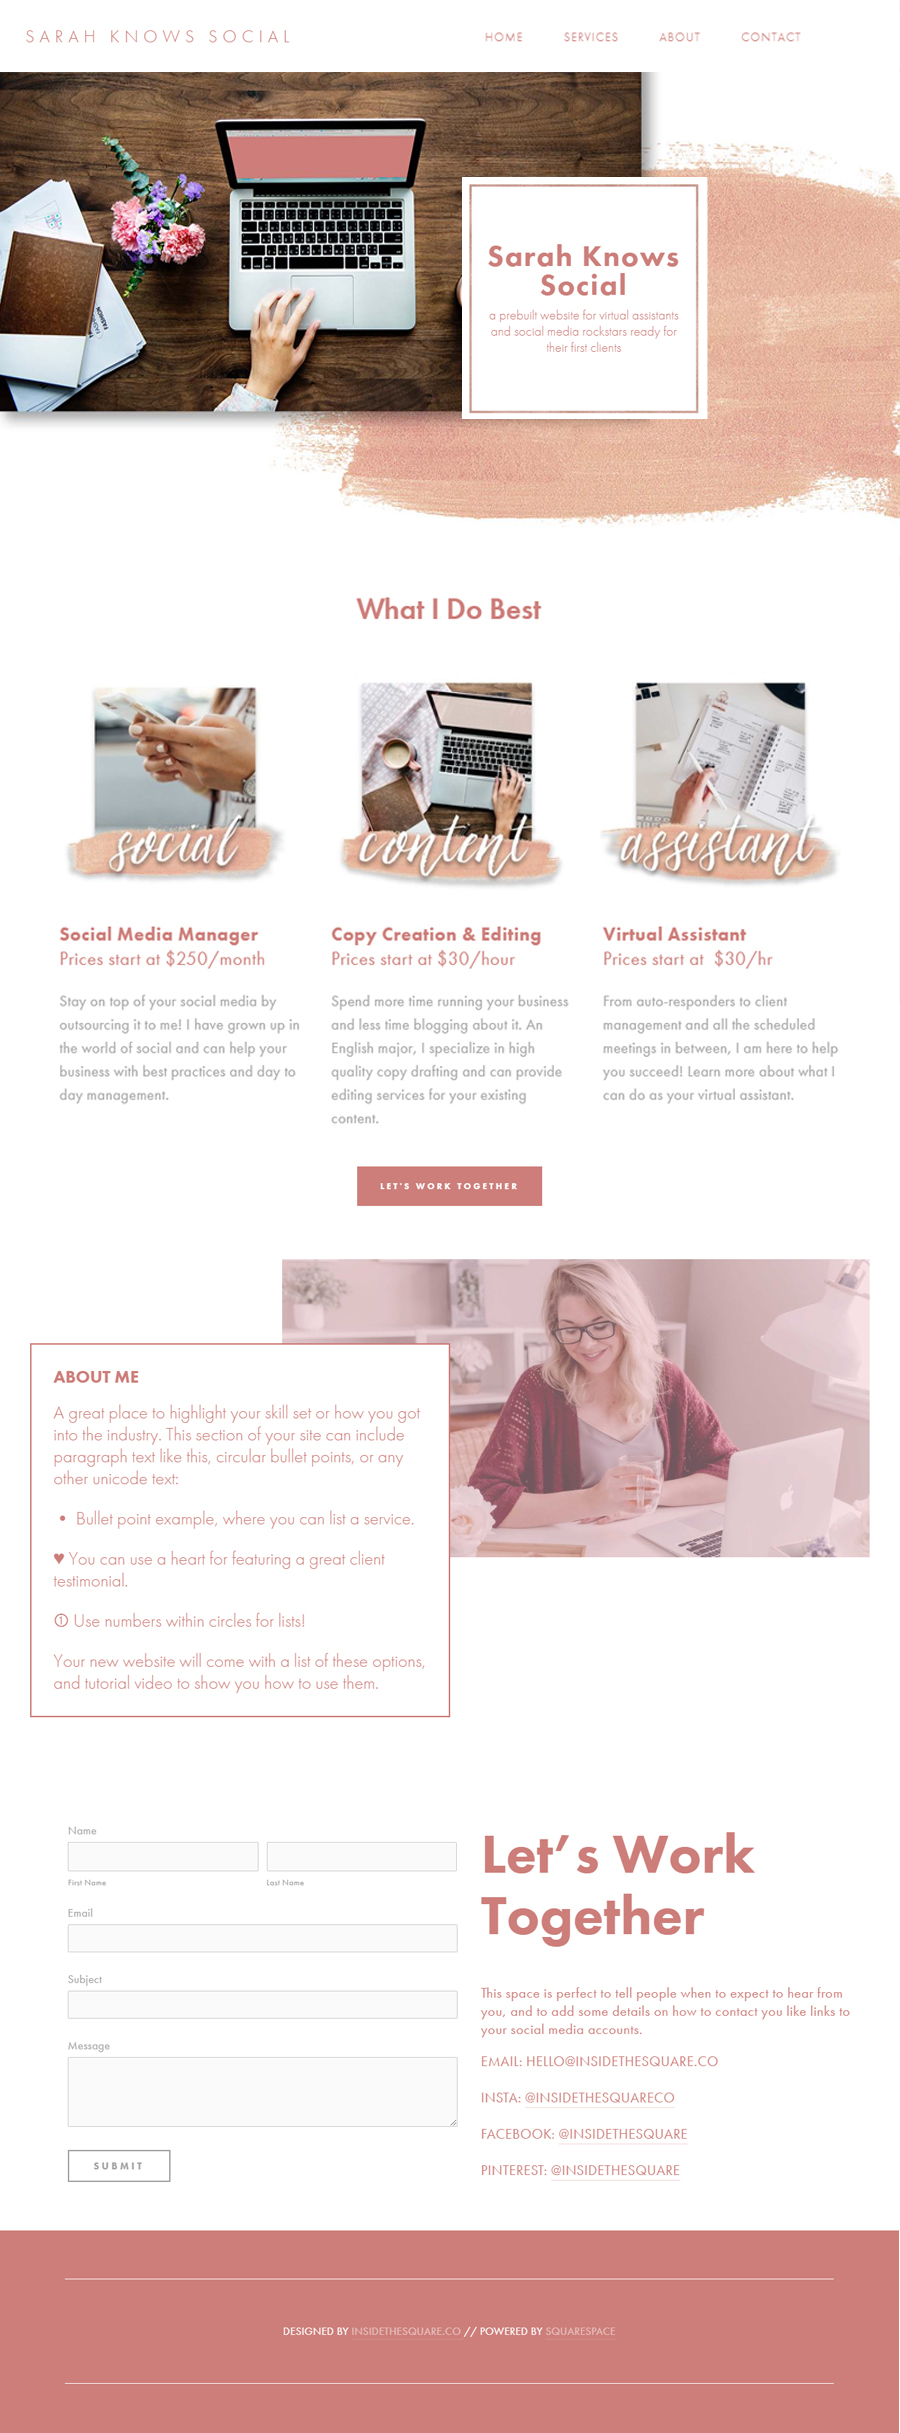 Sarah Knows Social // a premade Squarespace website for social media marketing pros from InsideTheSquare.co